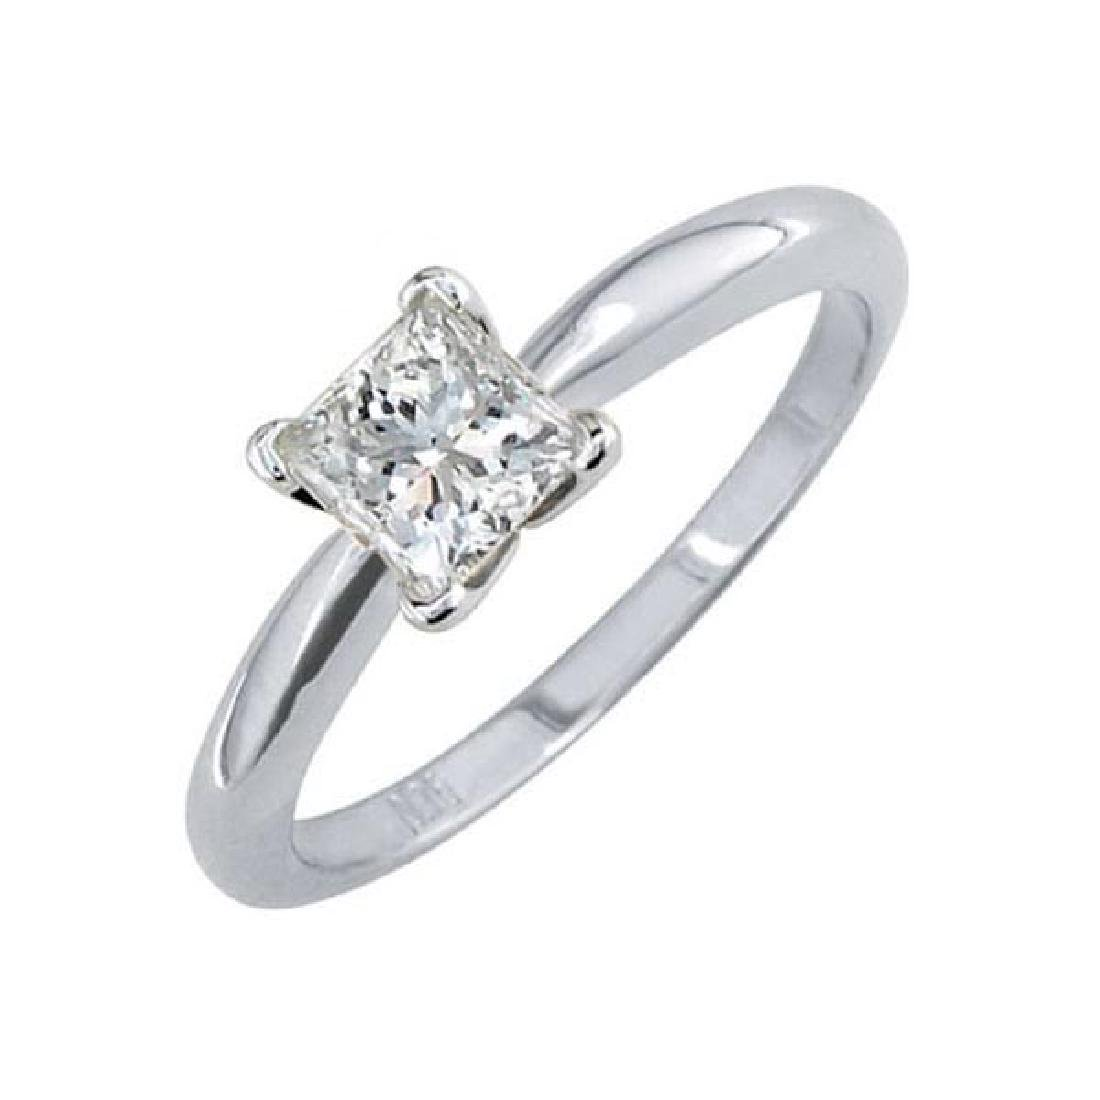 Certified 0.37 CTW Princess Diamond Solitaire 14k Ring